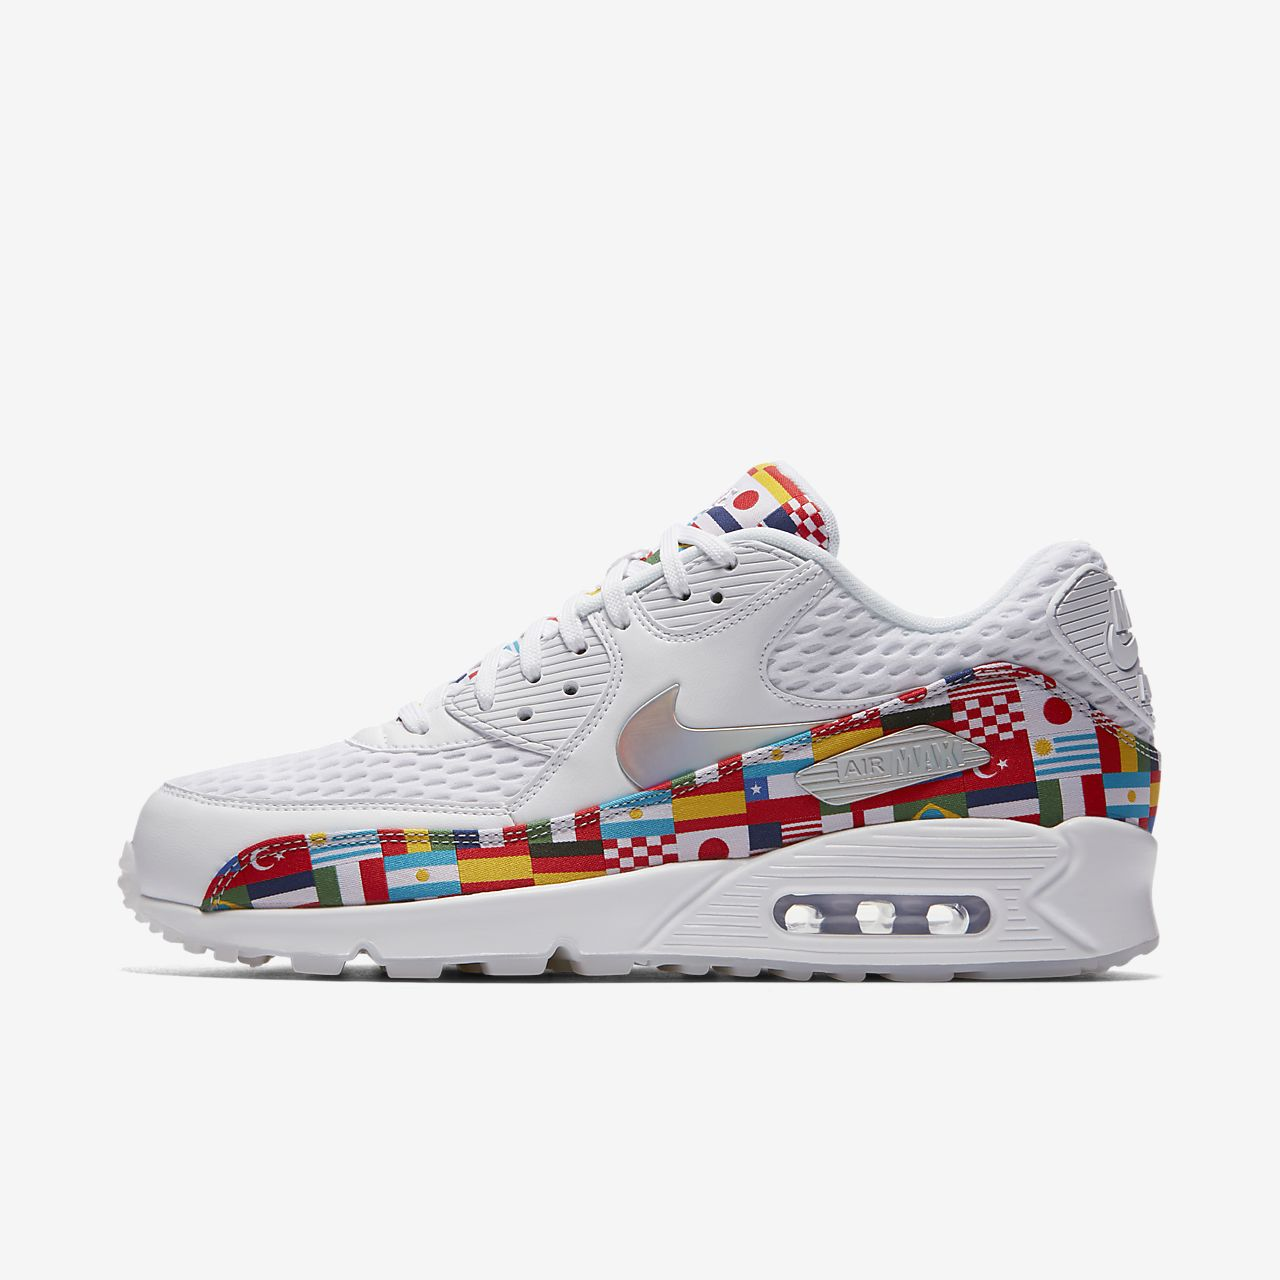 Chaussure Nike Air Max 90 NIC pour Homme